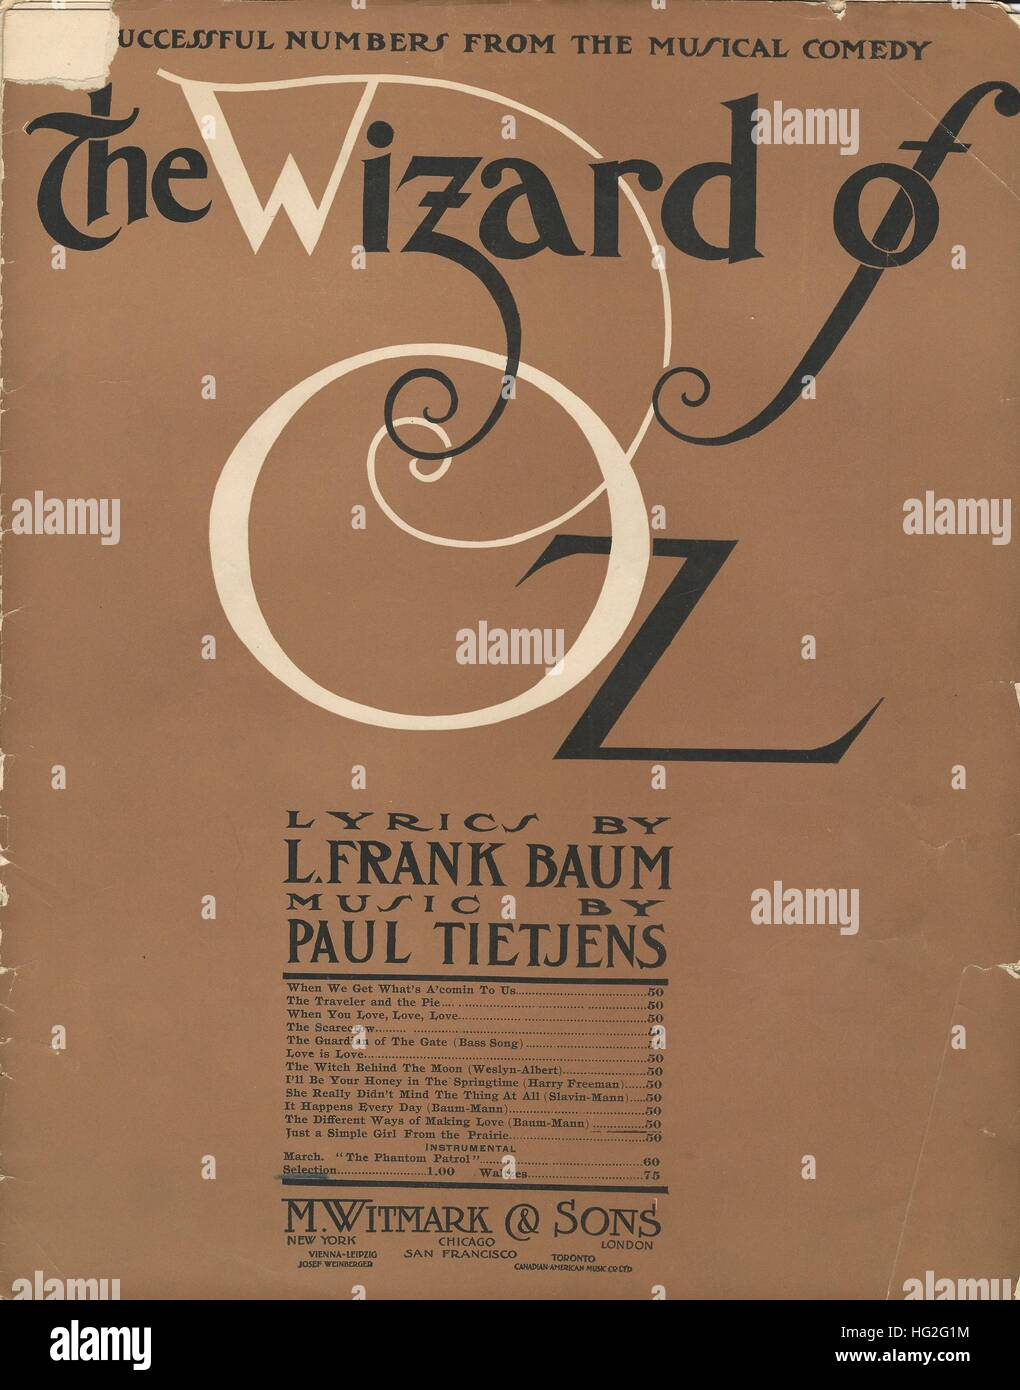 'The Wizard of Oz' 1903 Musical Sheet Music Cover - Stock Image